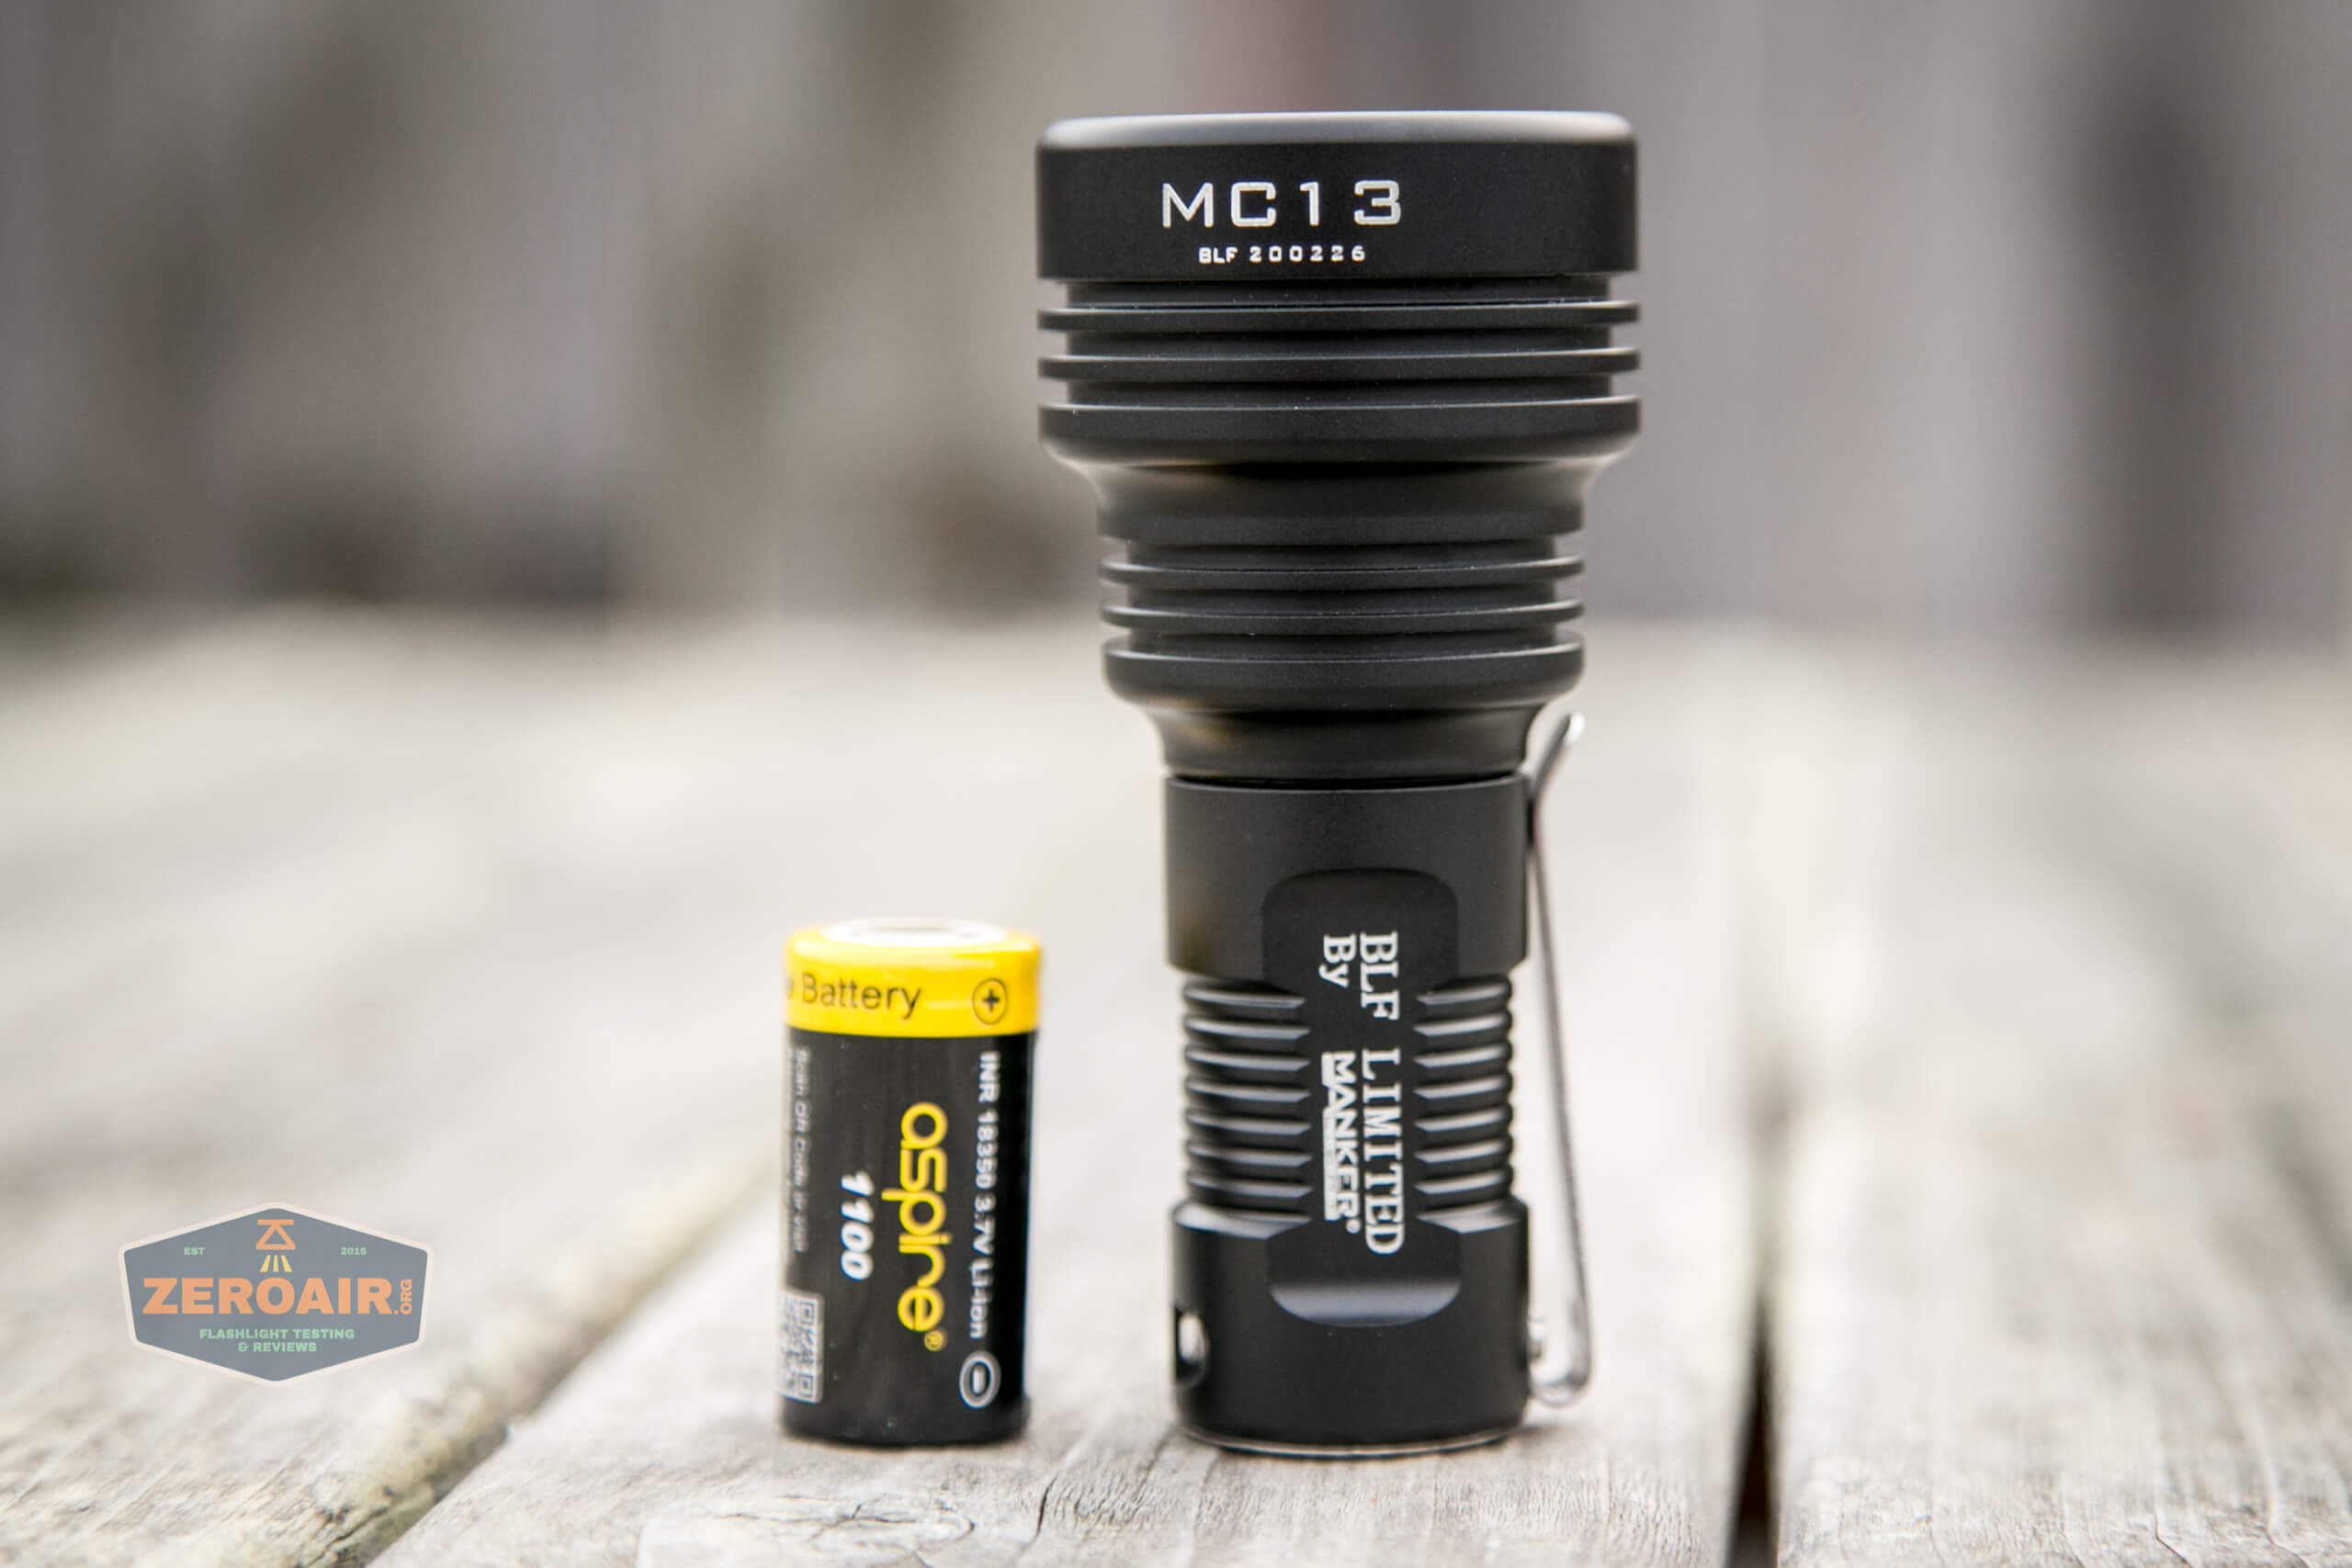 Manker MC13 thrower flashlight 18350 body with cell